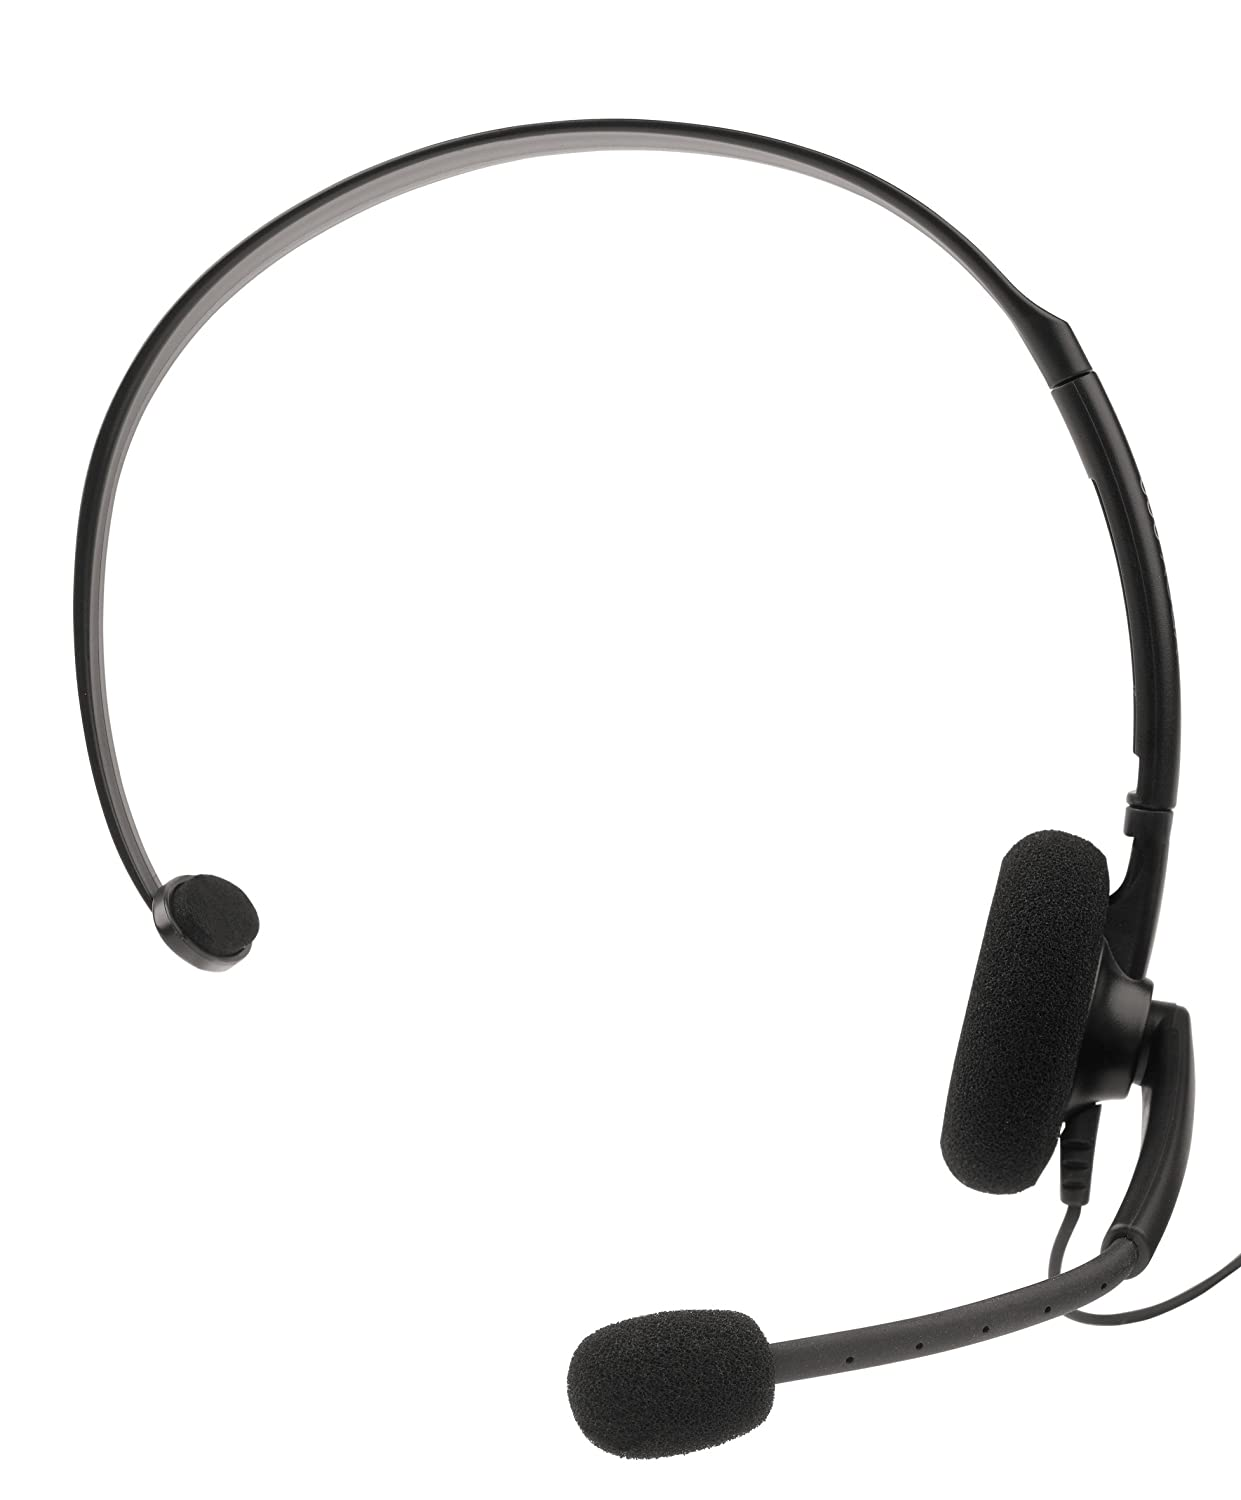 Elite Official Wired Headset Black XBOX 360: Amazon.co.uk: PC ...